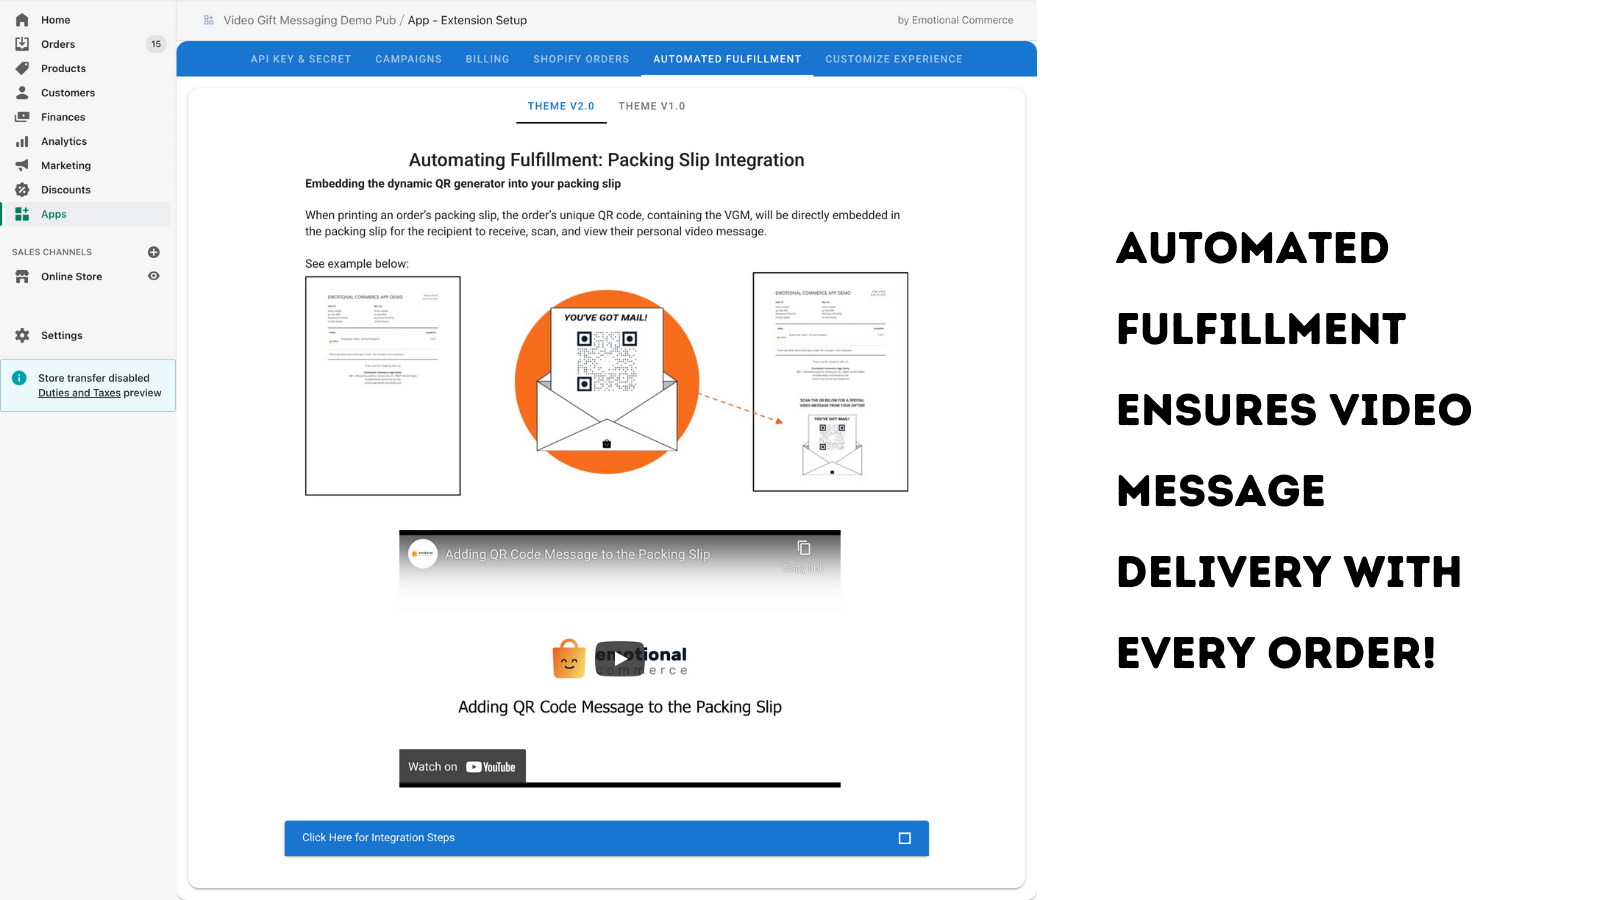 Automated fulfillment ensures video message delivery